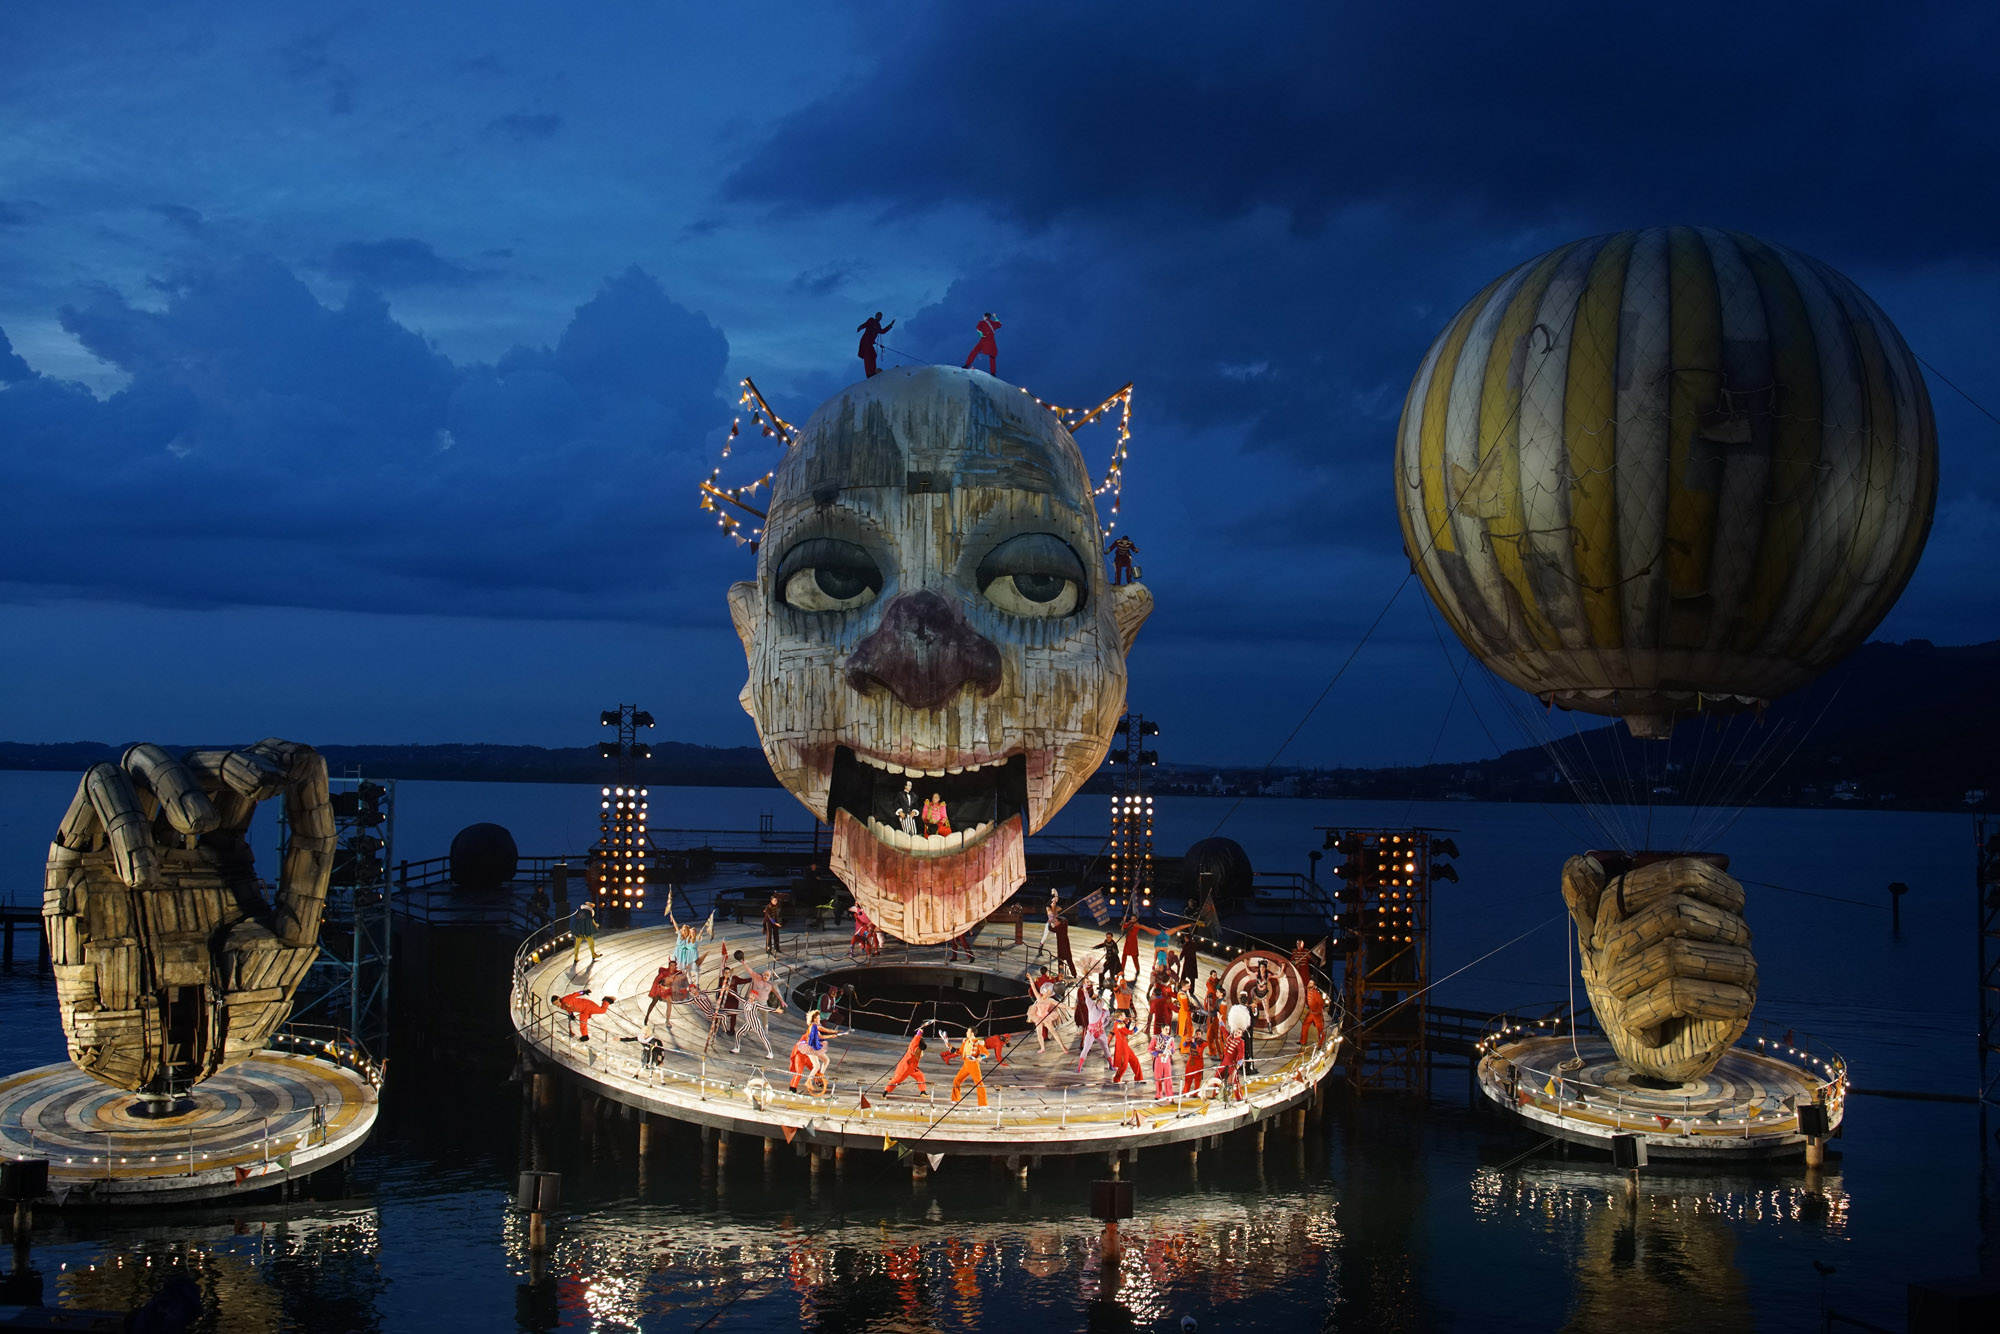 The opulent production of Rigoletto brings the parts of colossal clown to life